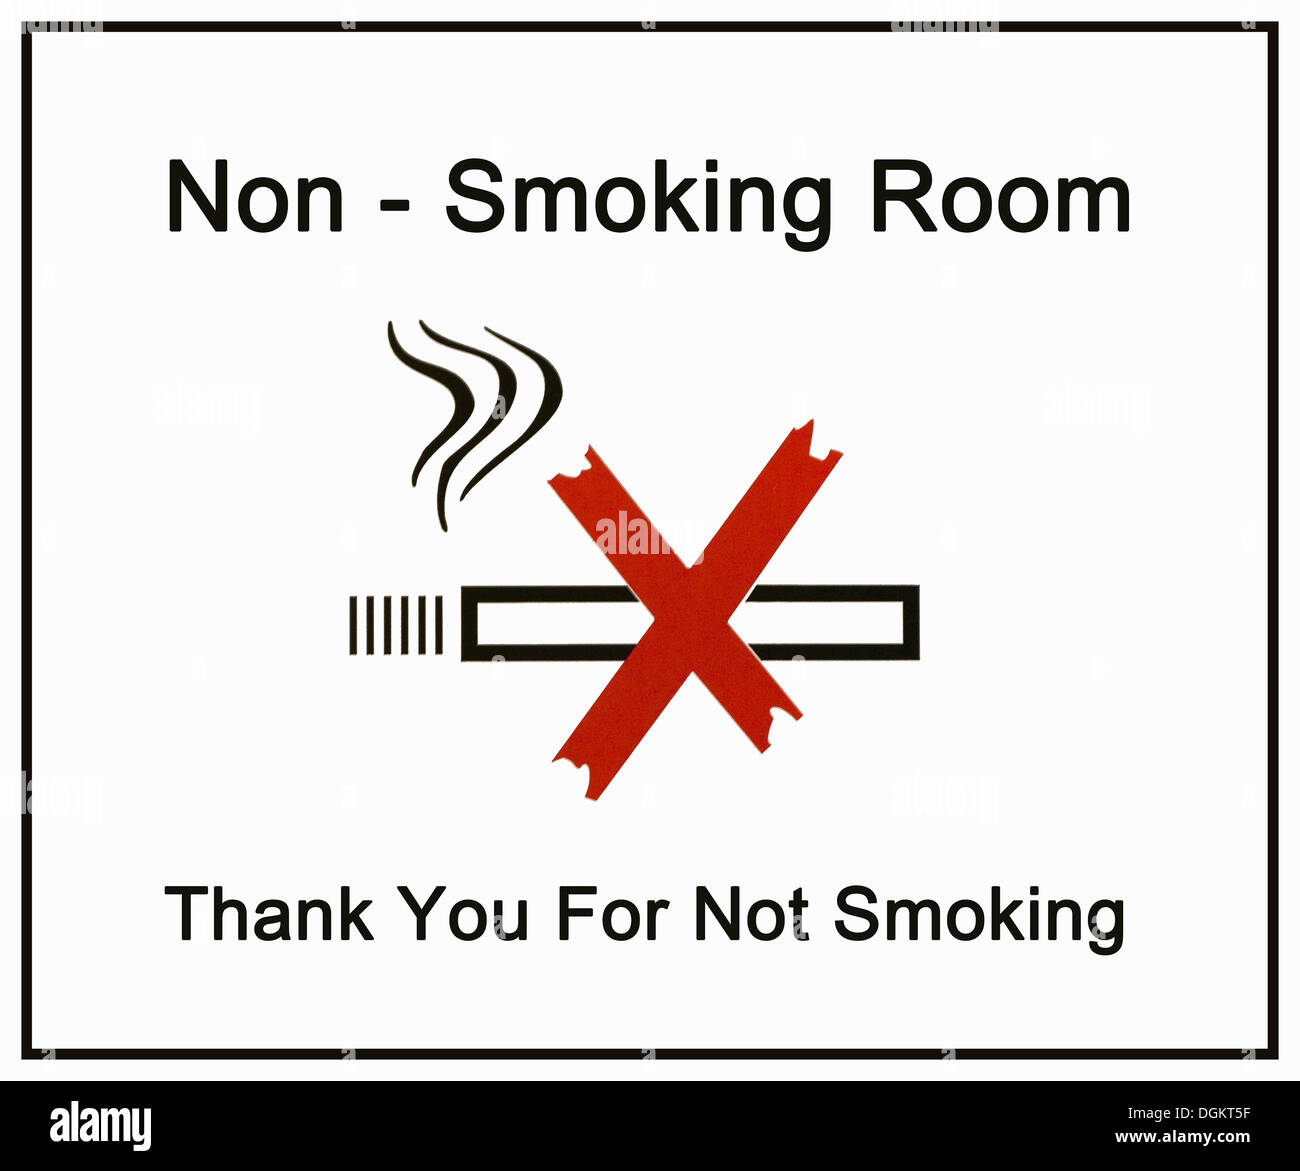 Sign, Non-smoking room, thank you for not smoking - Stock Image